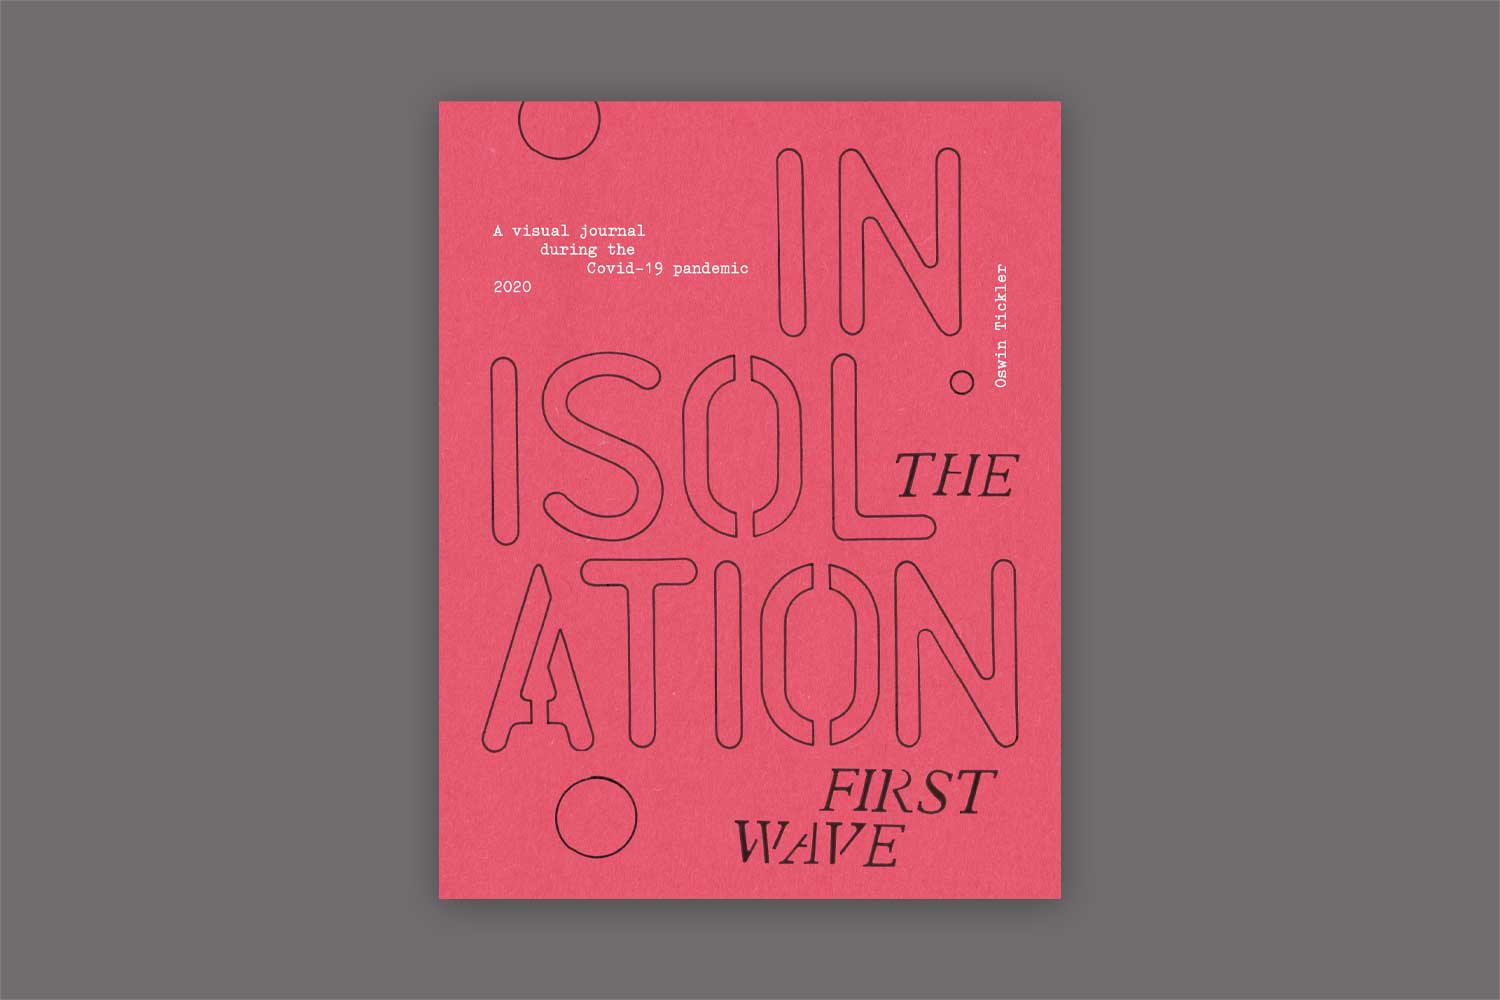 The front cover of 'In Isolation: The first wave' book. The cover is red, with black and white text across it.